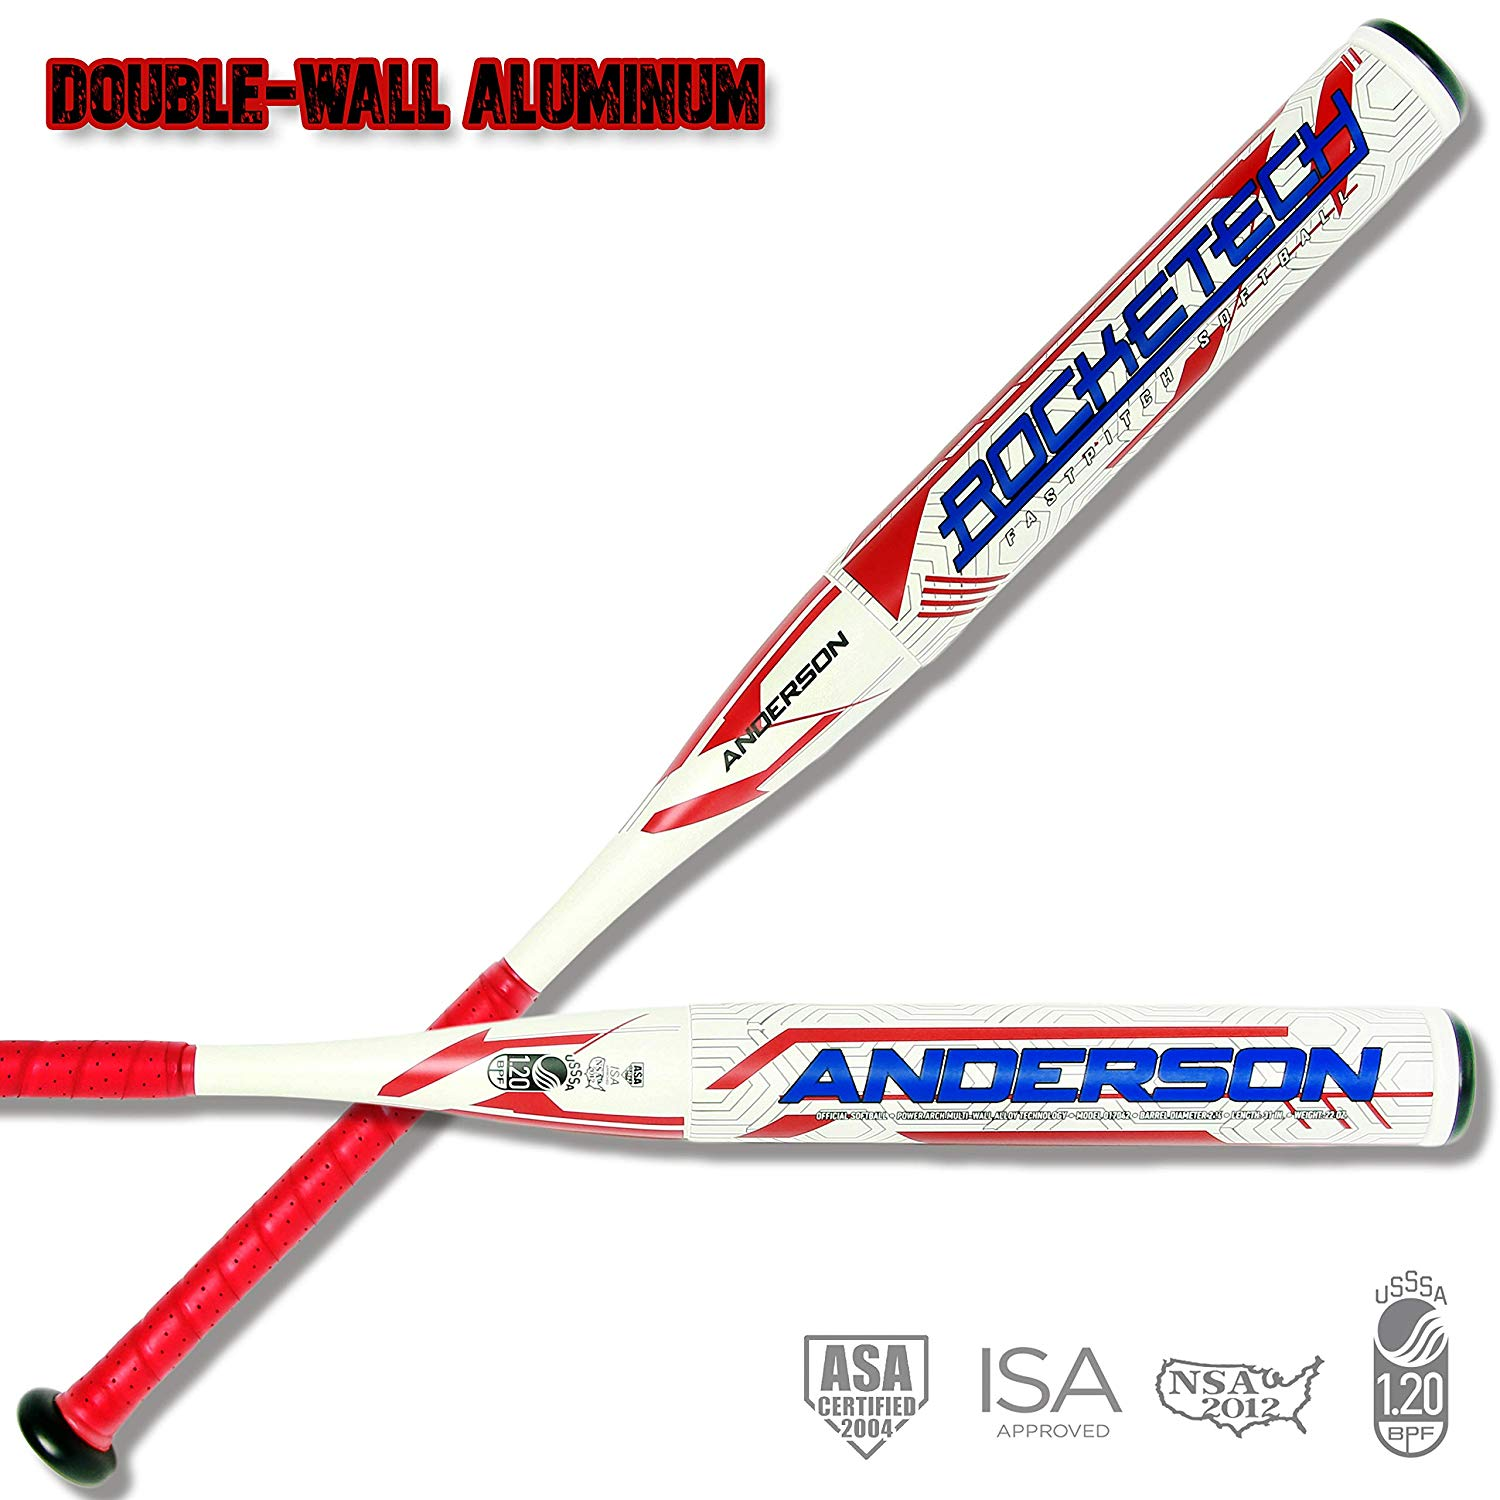 anderson-rocketech-9-double-wall-fastpitch-softball-bat-34-inch-25-oz 017042-3425 Anderson 874147009543 `-9 Drop Weight End Loaded for more POWER guaranteed! Approved By